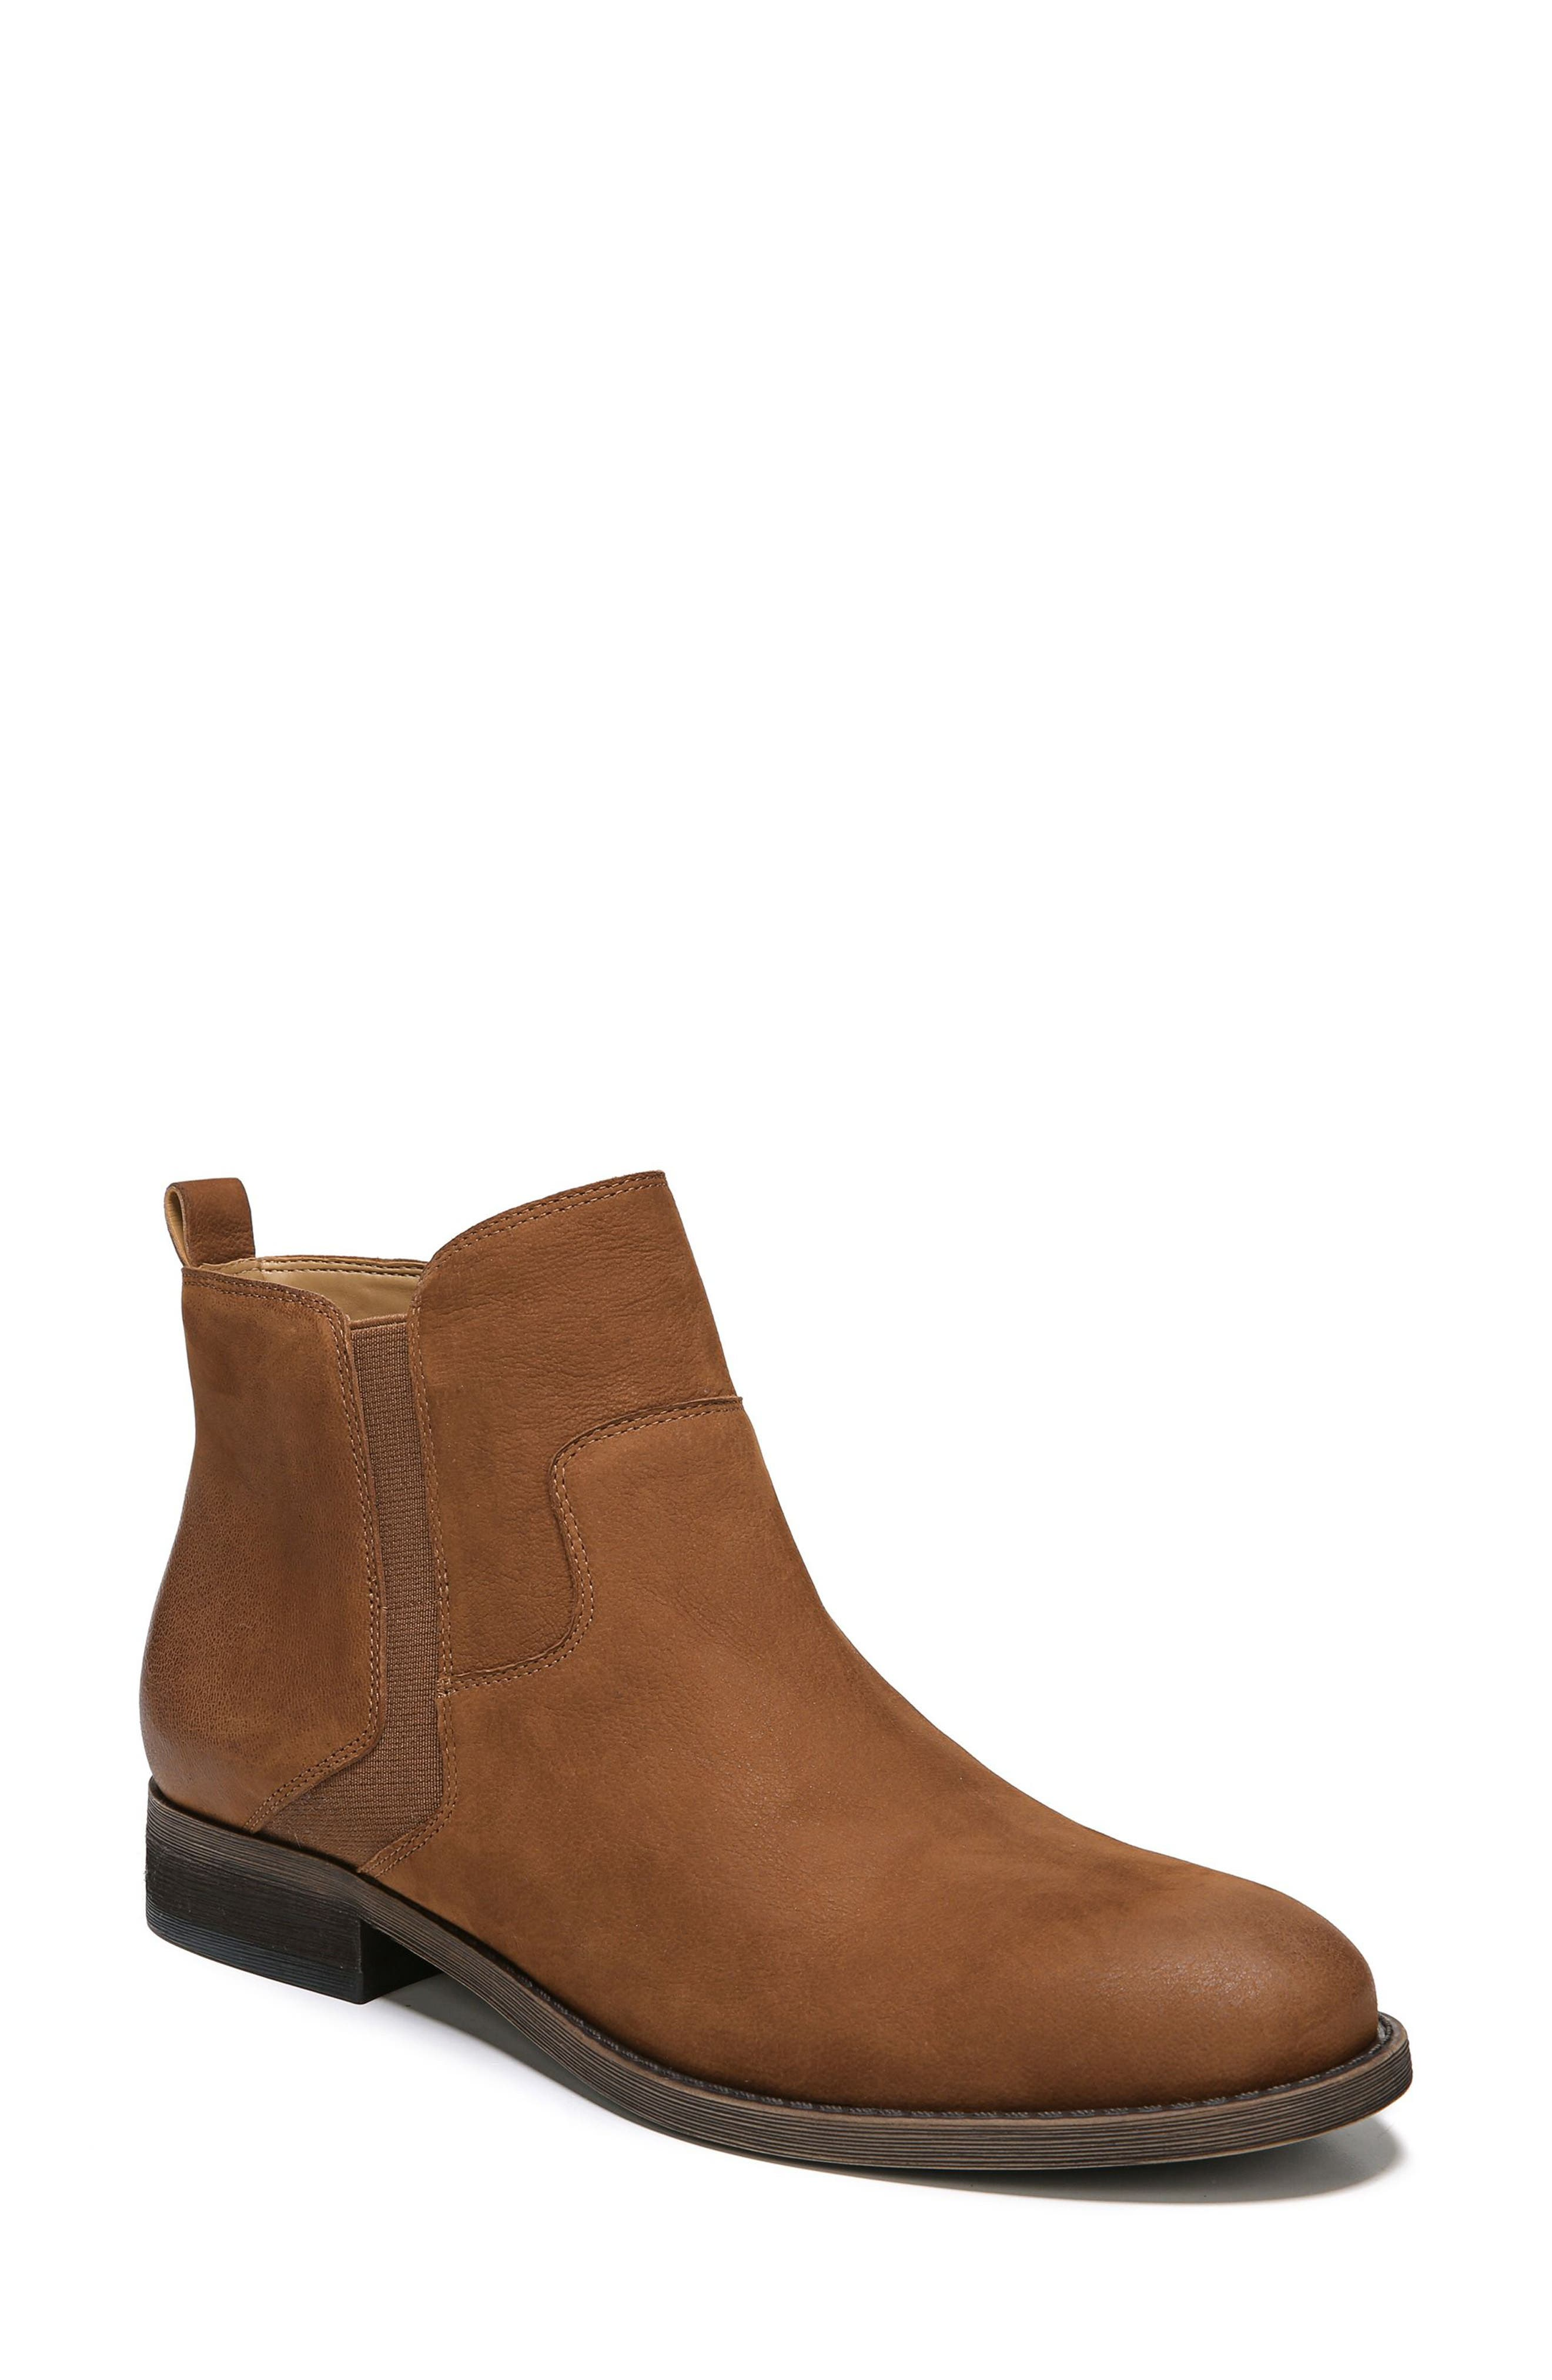 Hampton Bootie,                             Main thumbnail 1, color,                             WHISKEY LEATHER